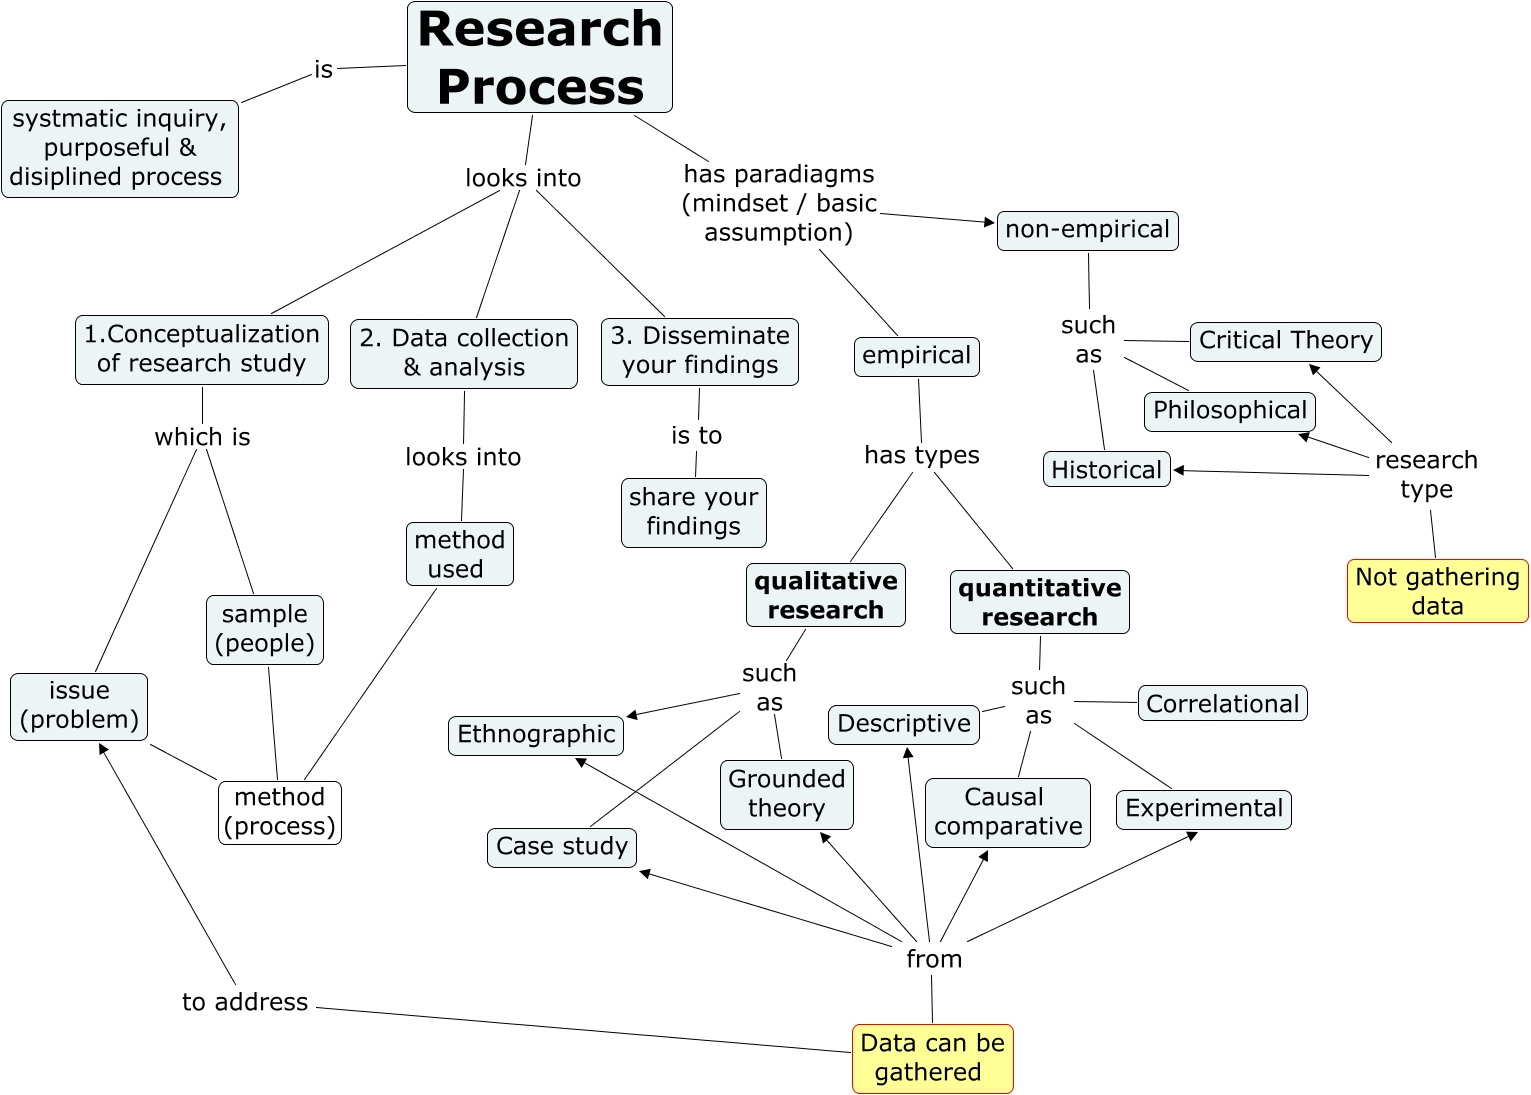 1search process not gathering data research type historical not gathering data research type philosophical method used method process sample people empirical has sciox Choice Image